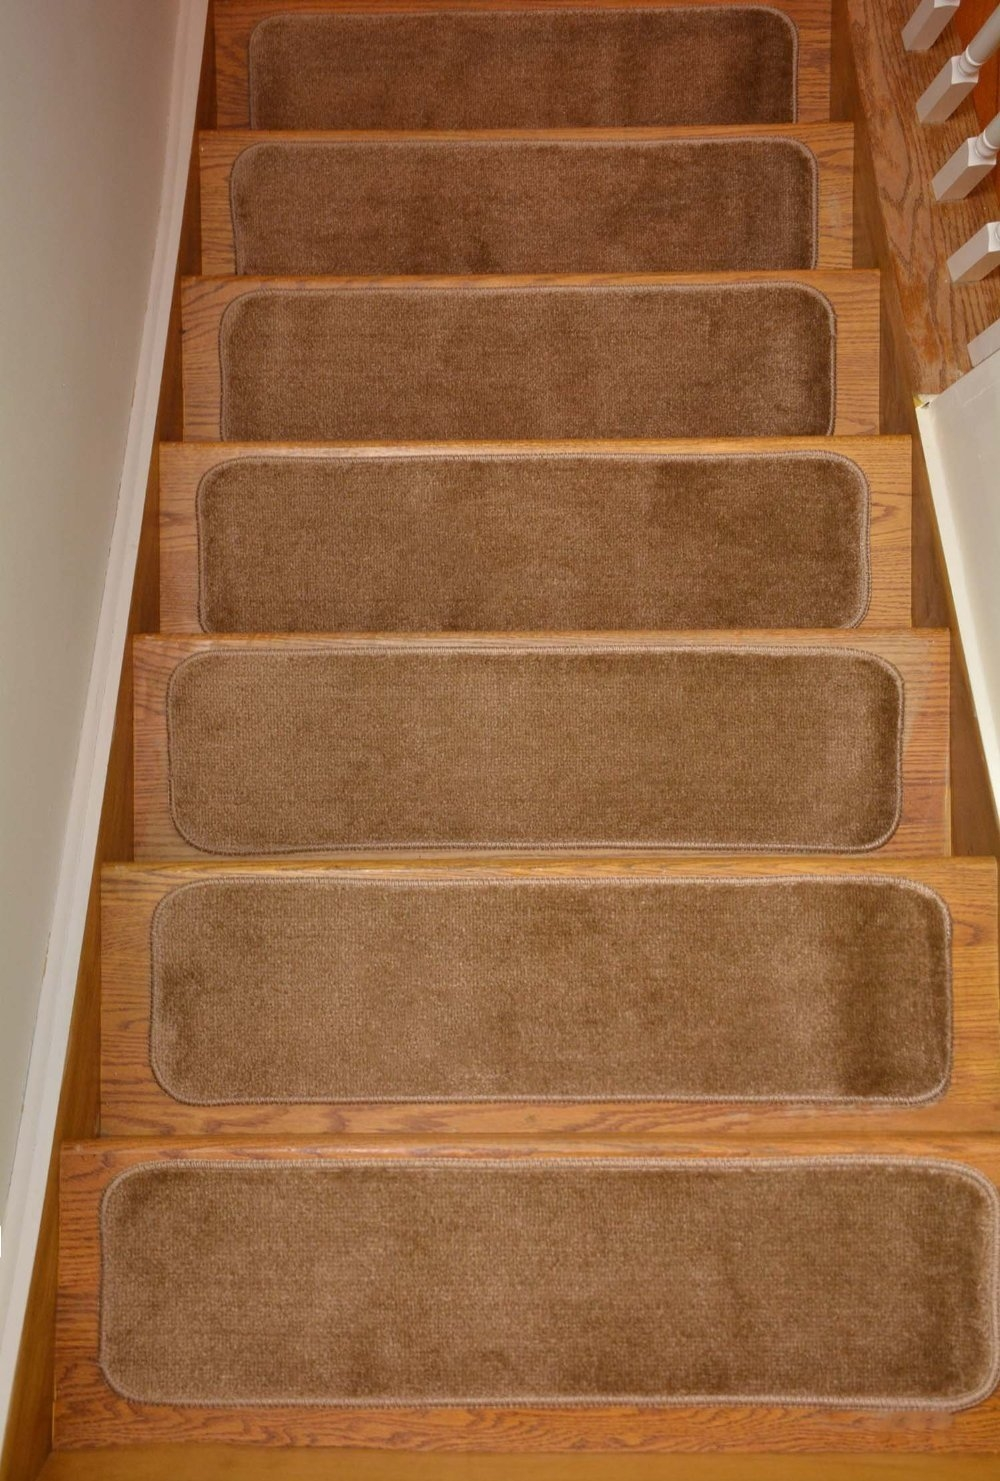 Comfy Stair Tread Treads Indoor Skid Slip Resistant Carpet Stair Regarding 8 Inch Stair Treads (View 10 of 20)